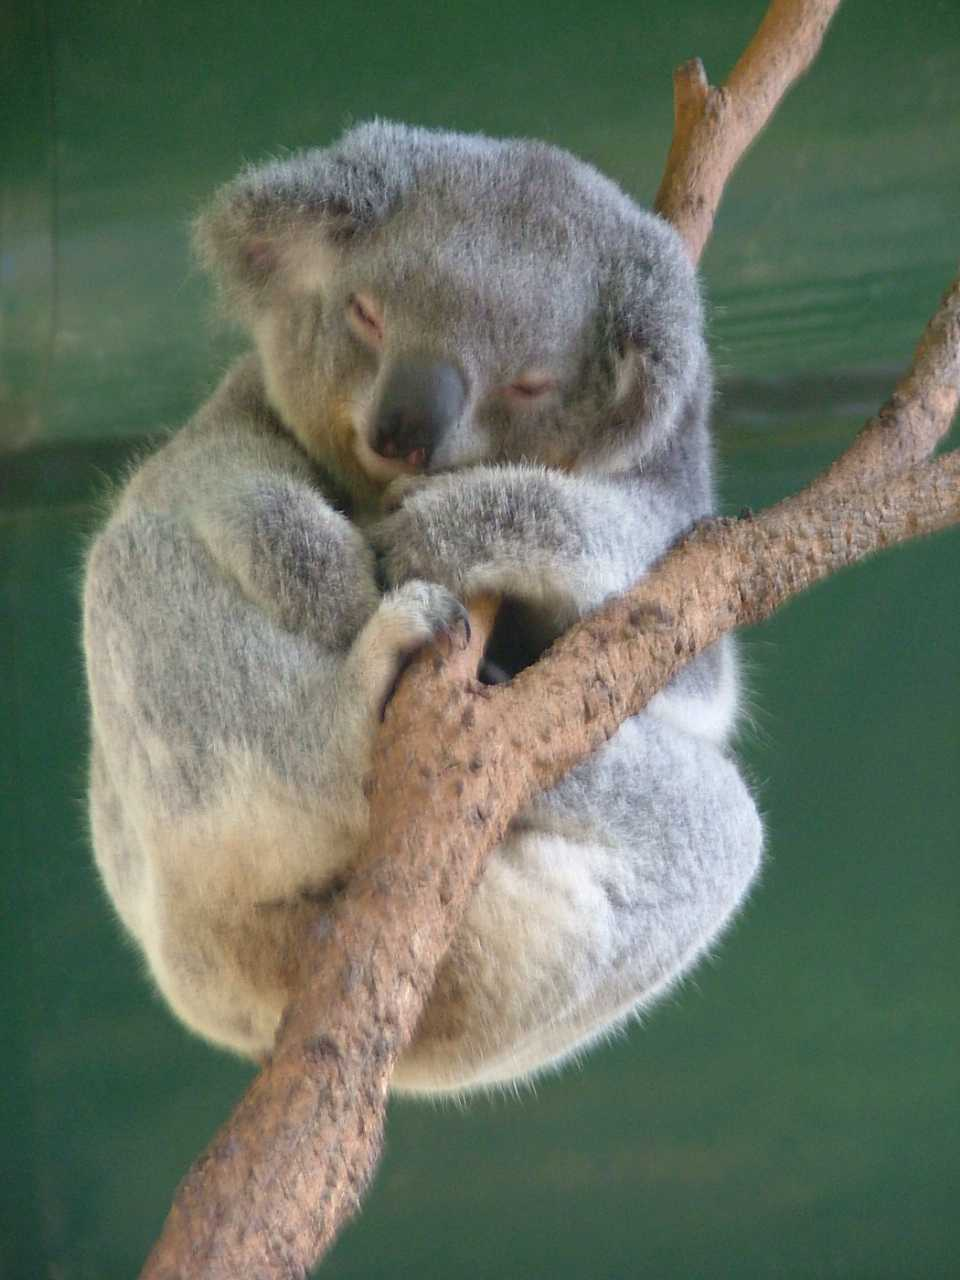 File:Sleeping Koala.JPG - Wikimedia Commons